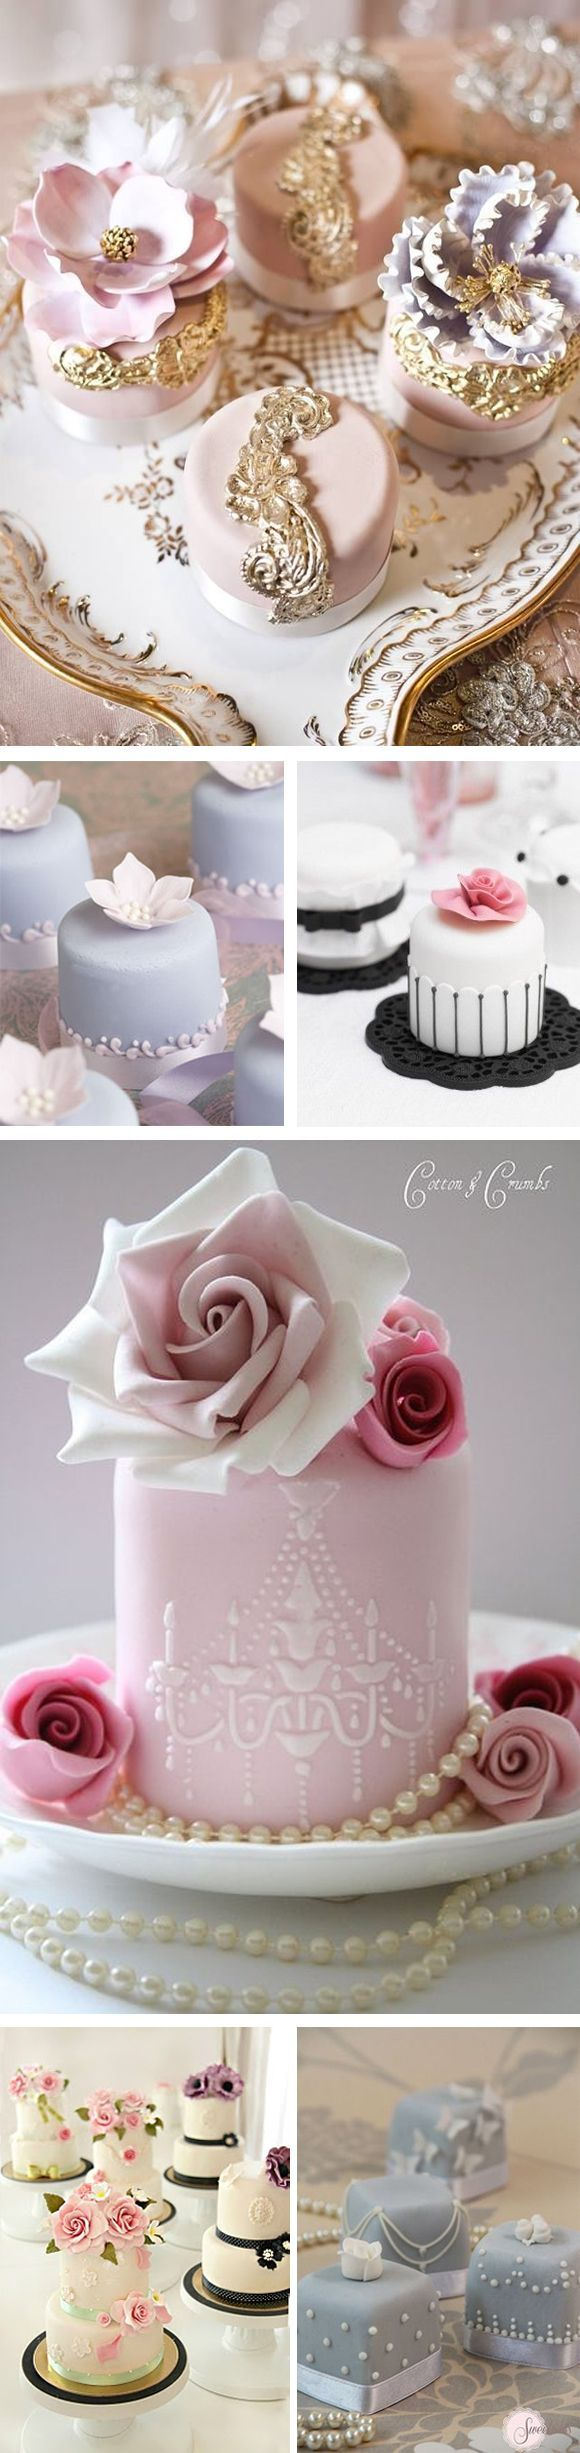 Mini cakes para bodas #weddingcakes #minicakes